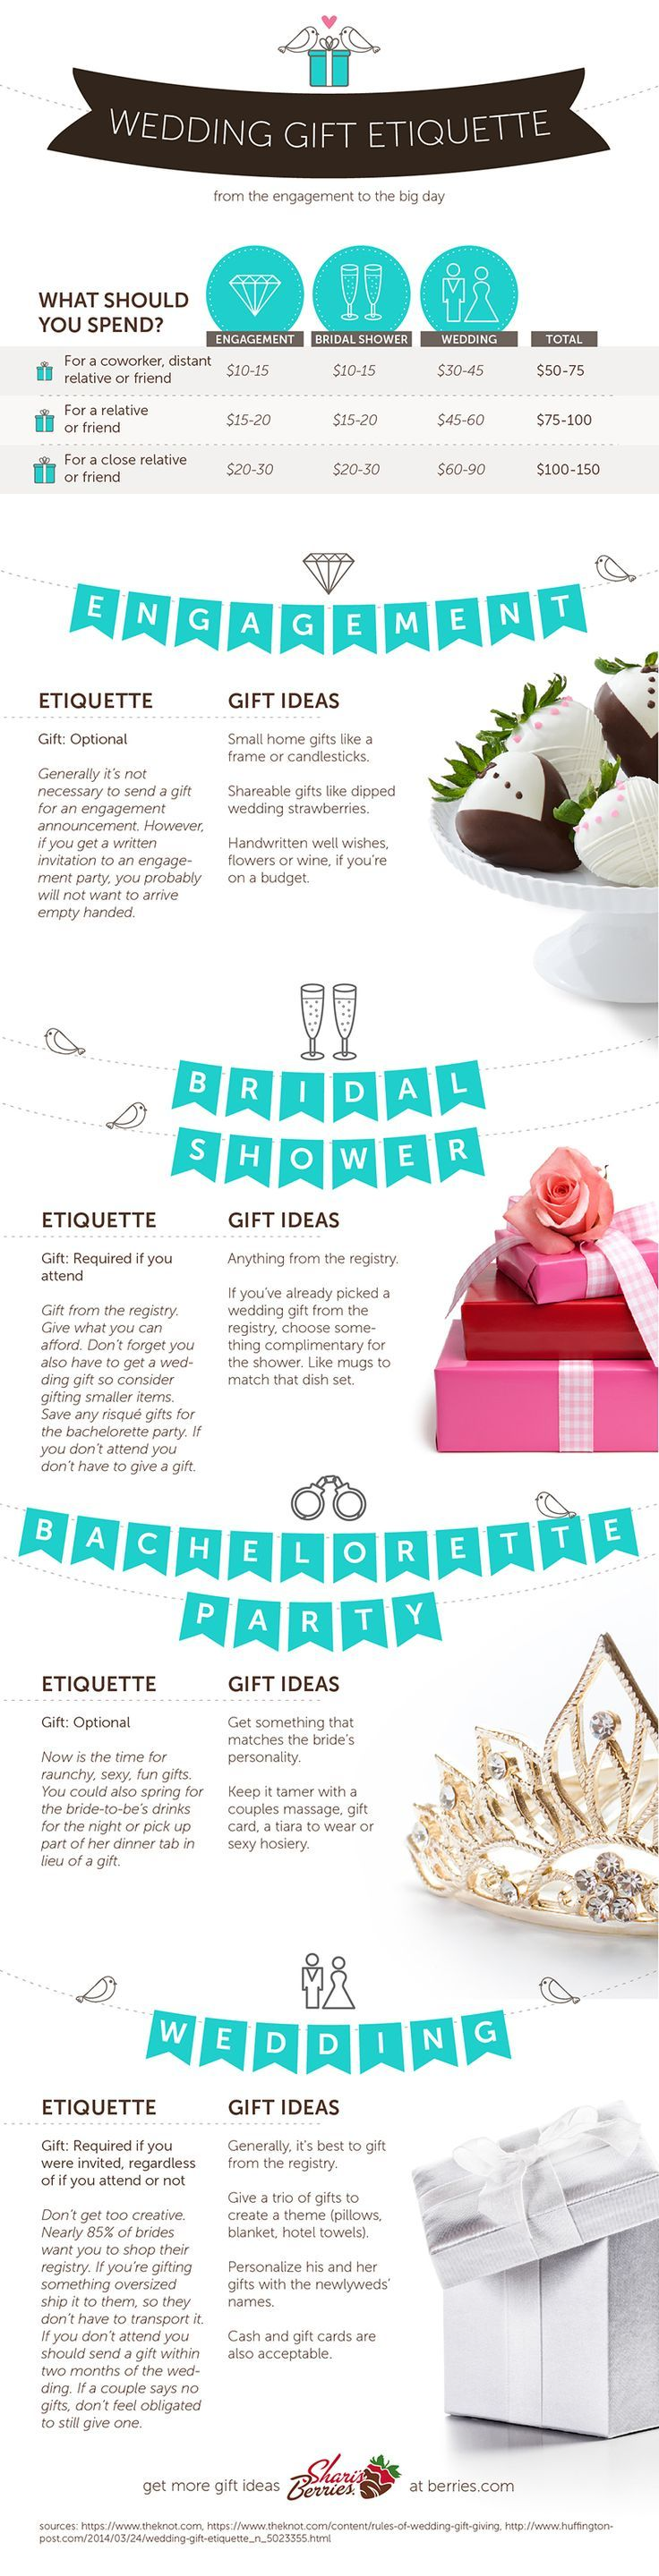 Wedding Gift Guide And Etiquette Do I Need A Gift For The Bridal